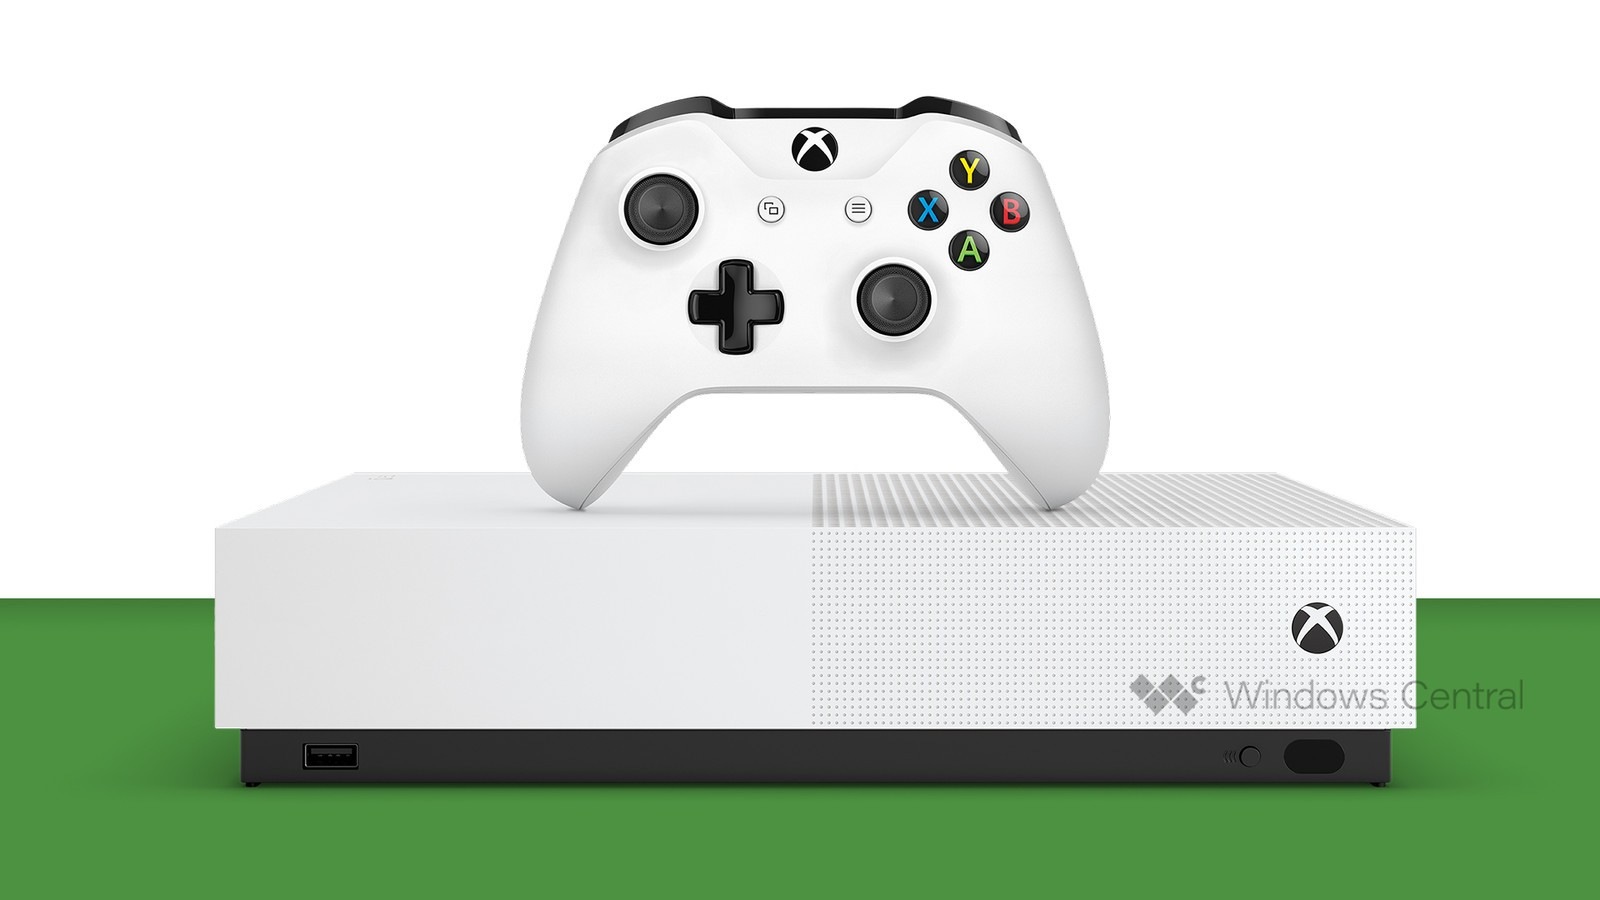 xbox one s all digital render mock